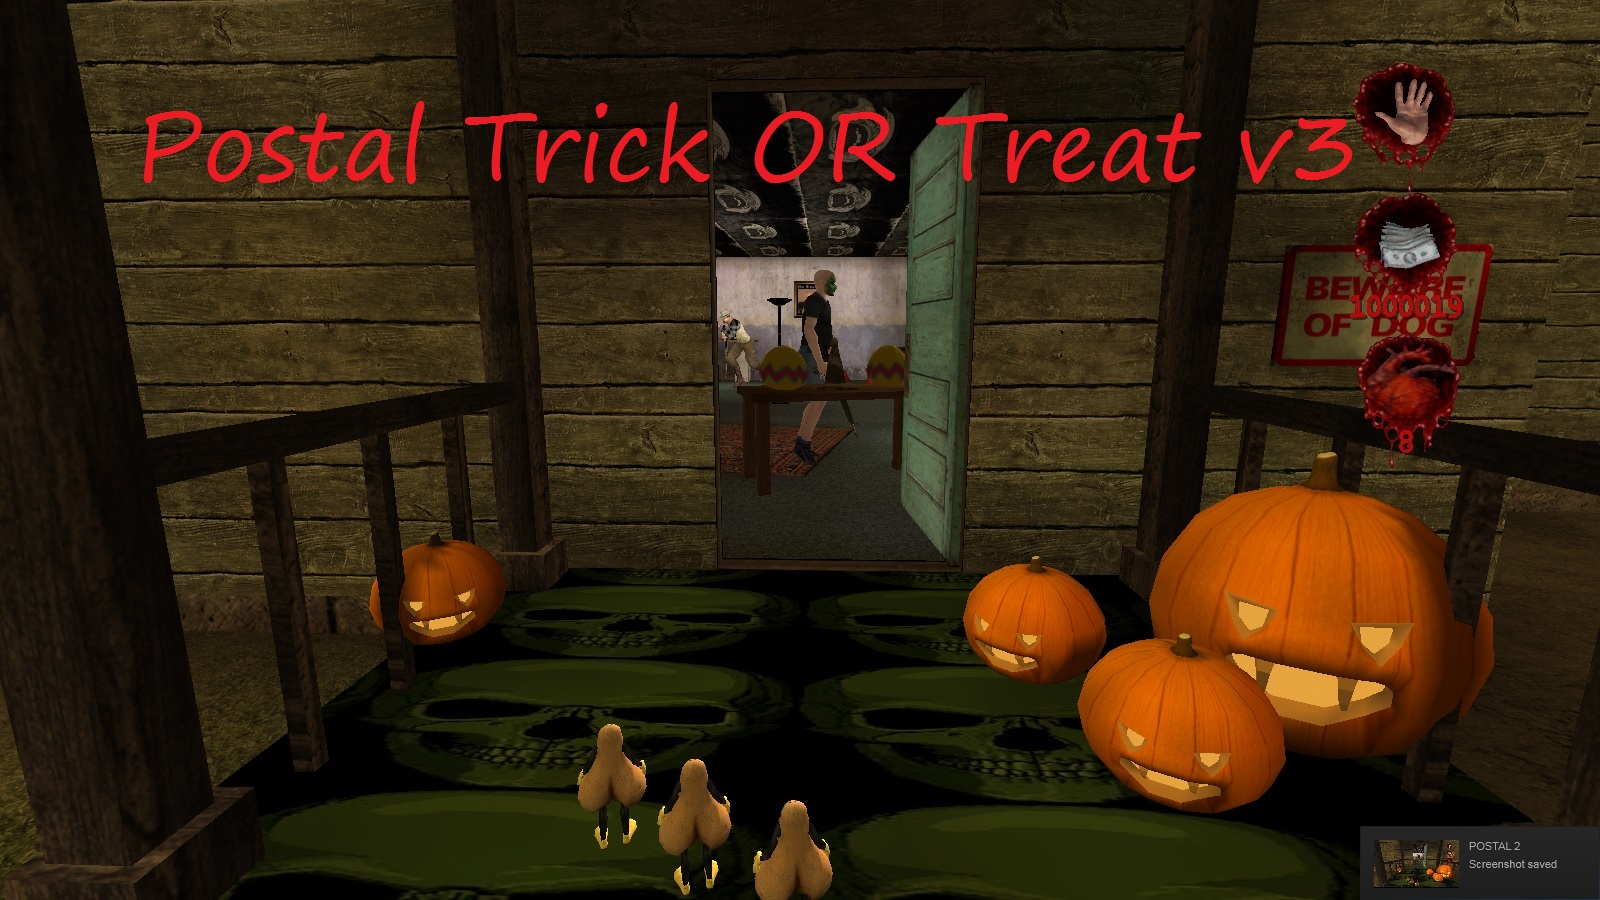 A Postal 2 mod I made called: POSTAL Trick OR Treat v3